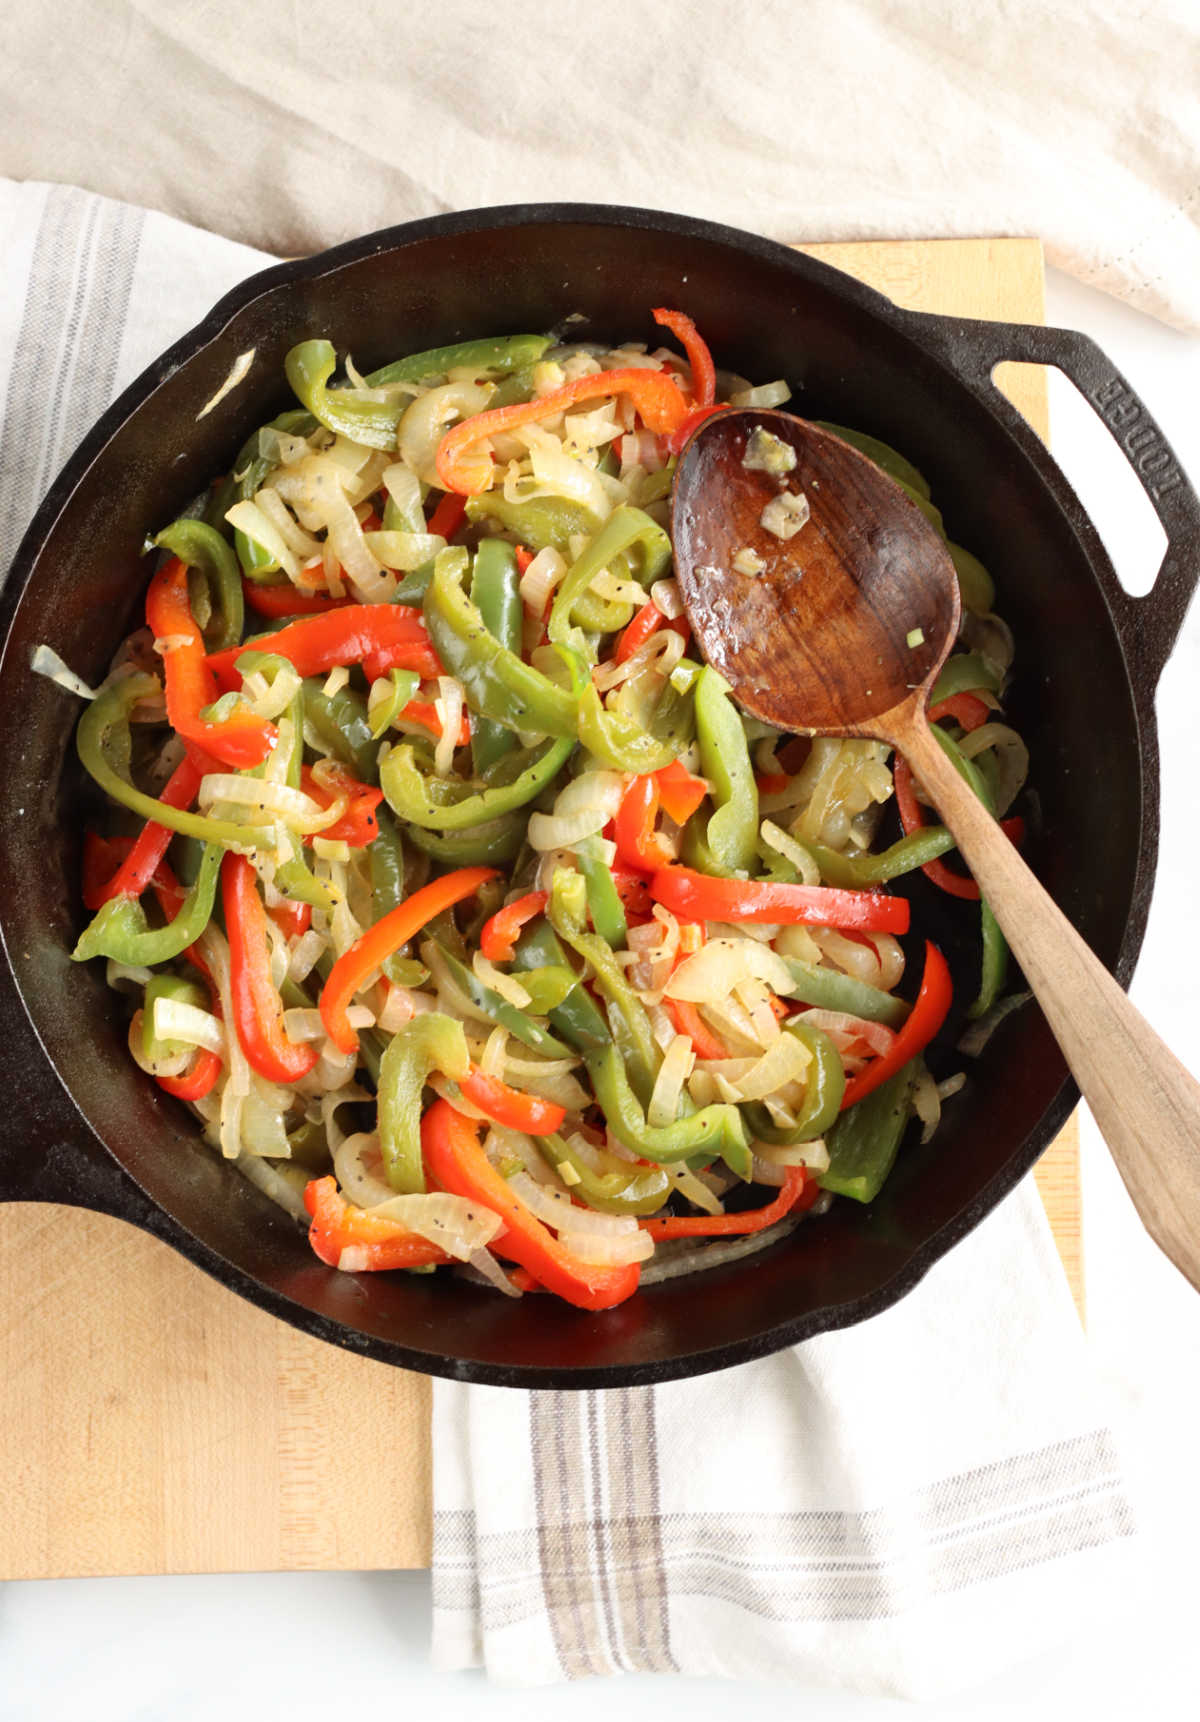 Red and green Bell peppers, onions in large cast iron skillet, wooden spoon in right of pan.